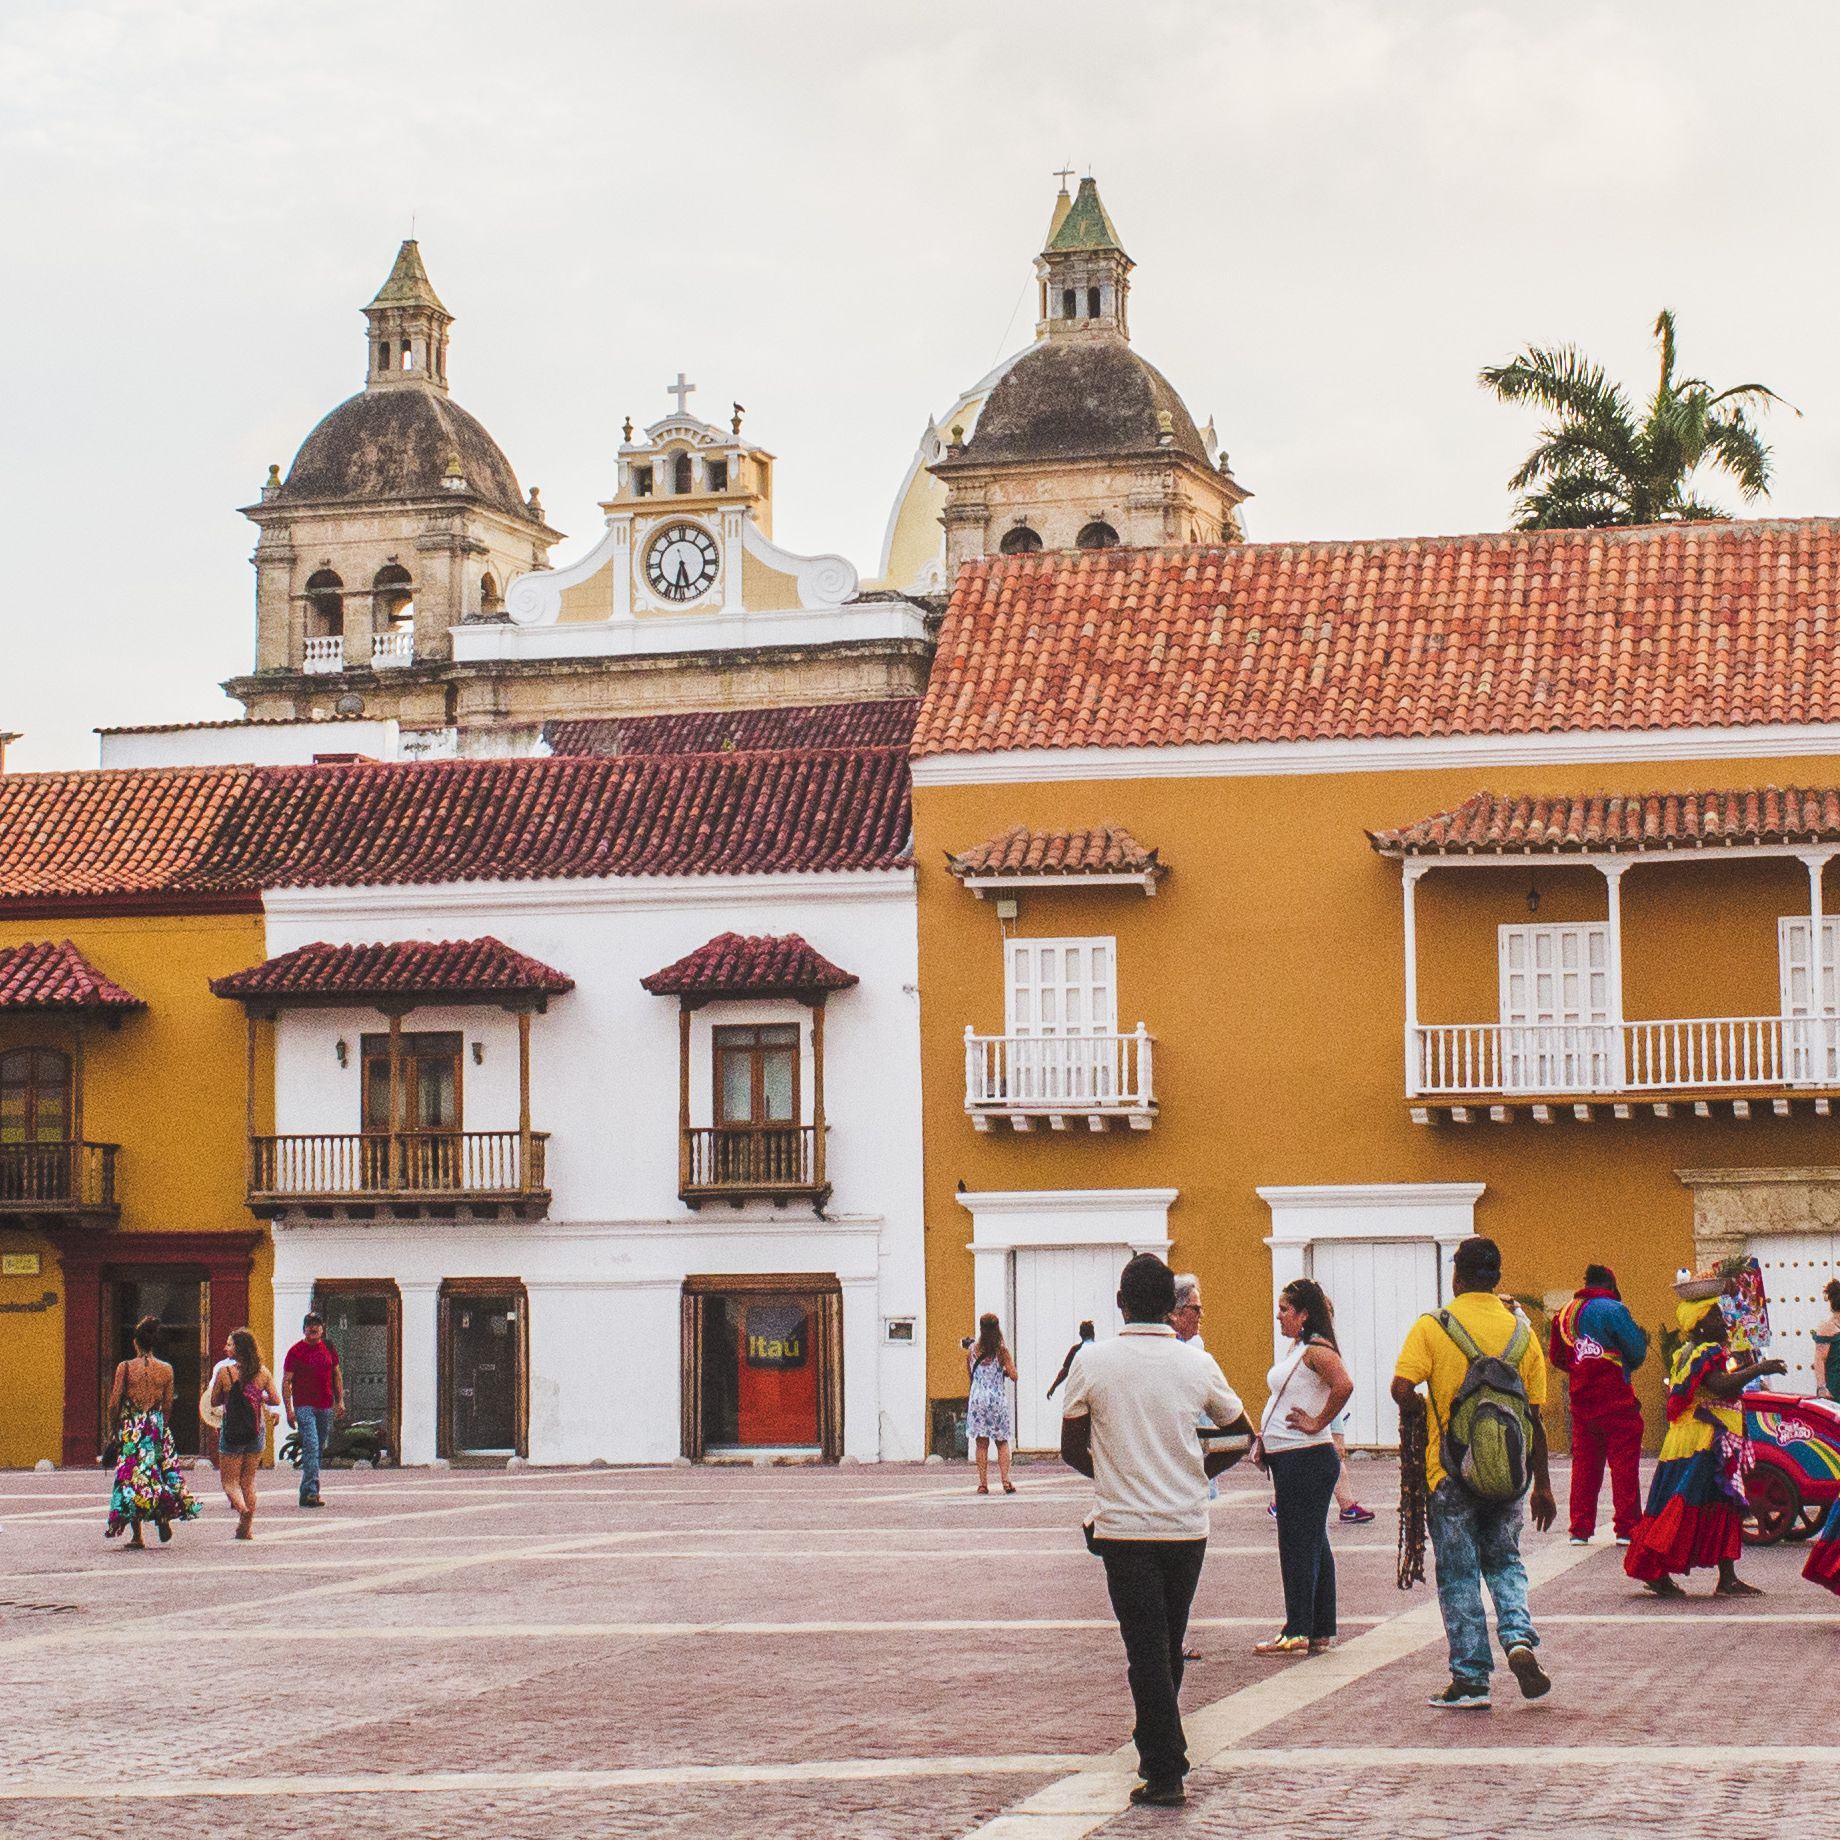 11 Things to Do and See in Cartagena, Colombia